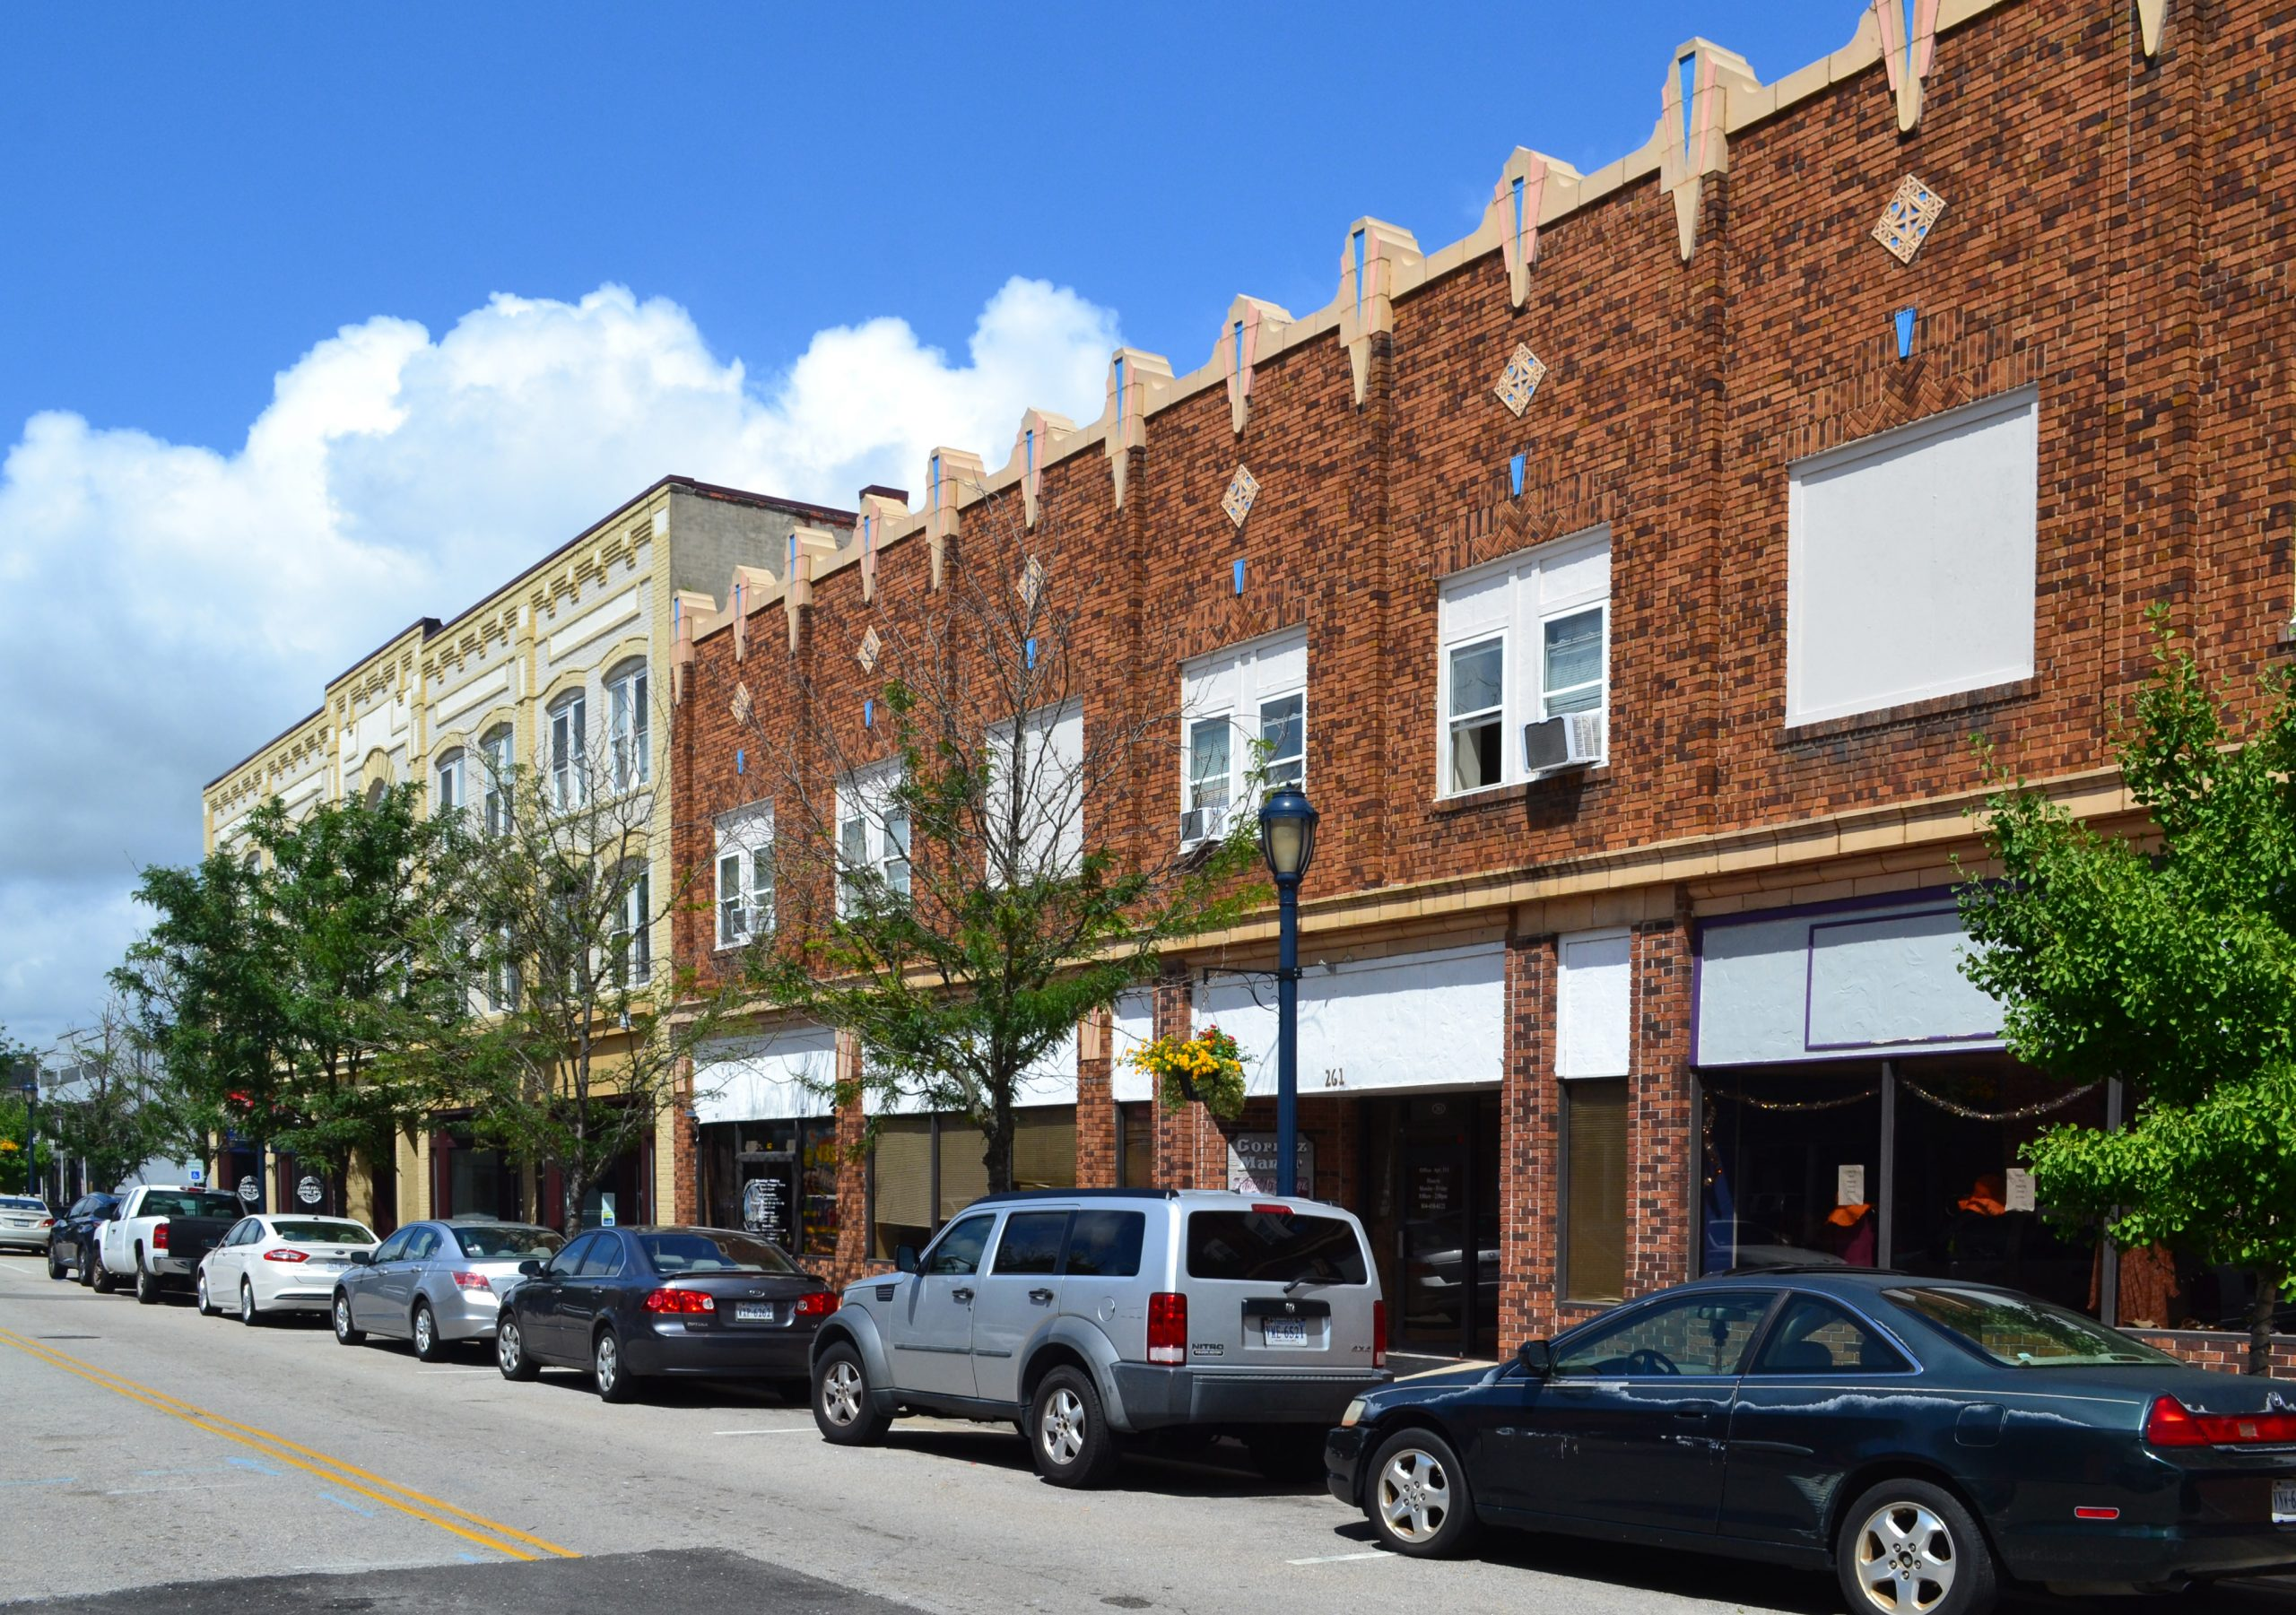 Downtown Hopewell Historic District